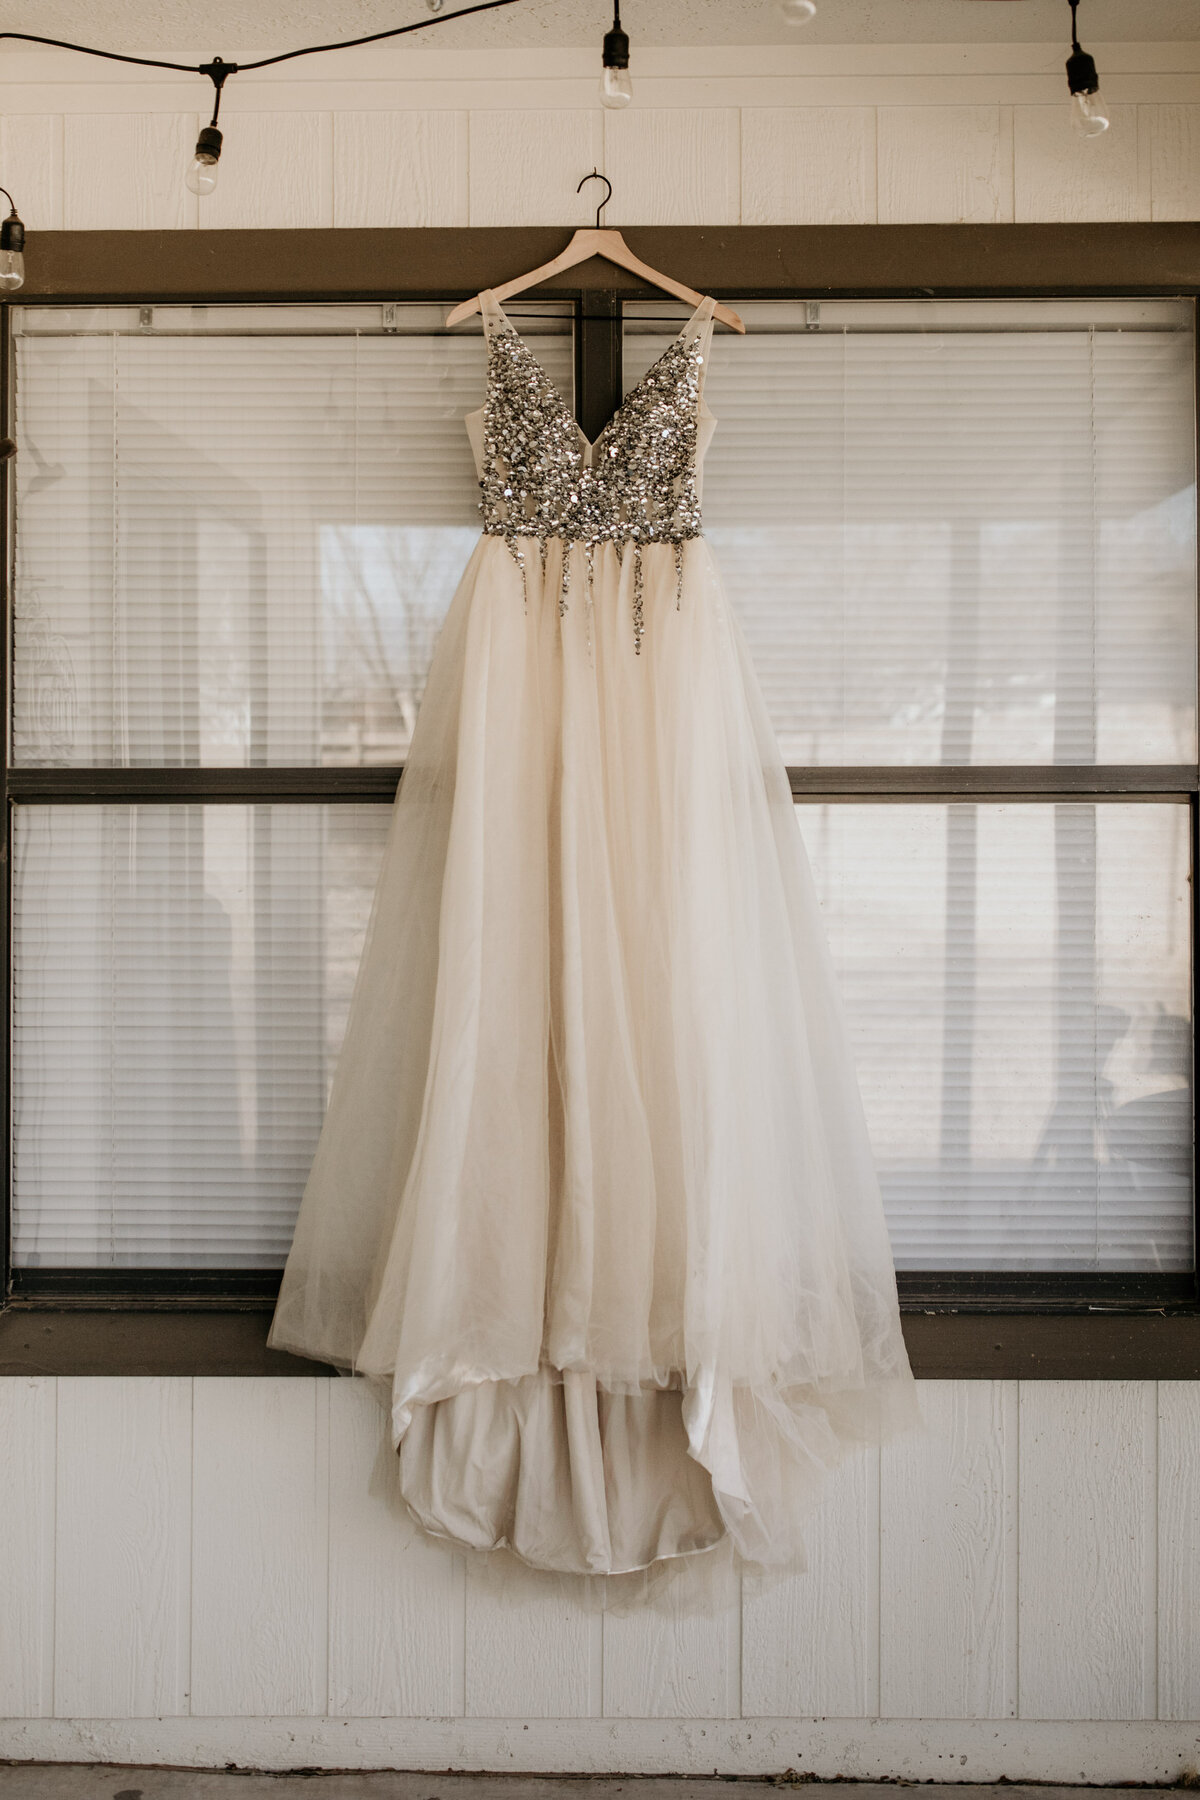 wedding-dress-rentals-for-styled-shoots-elopement-photographer-19-22